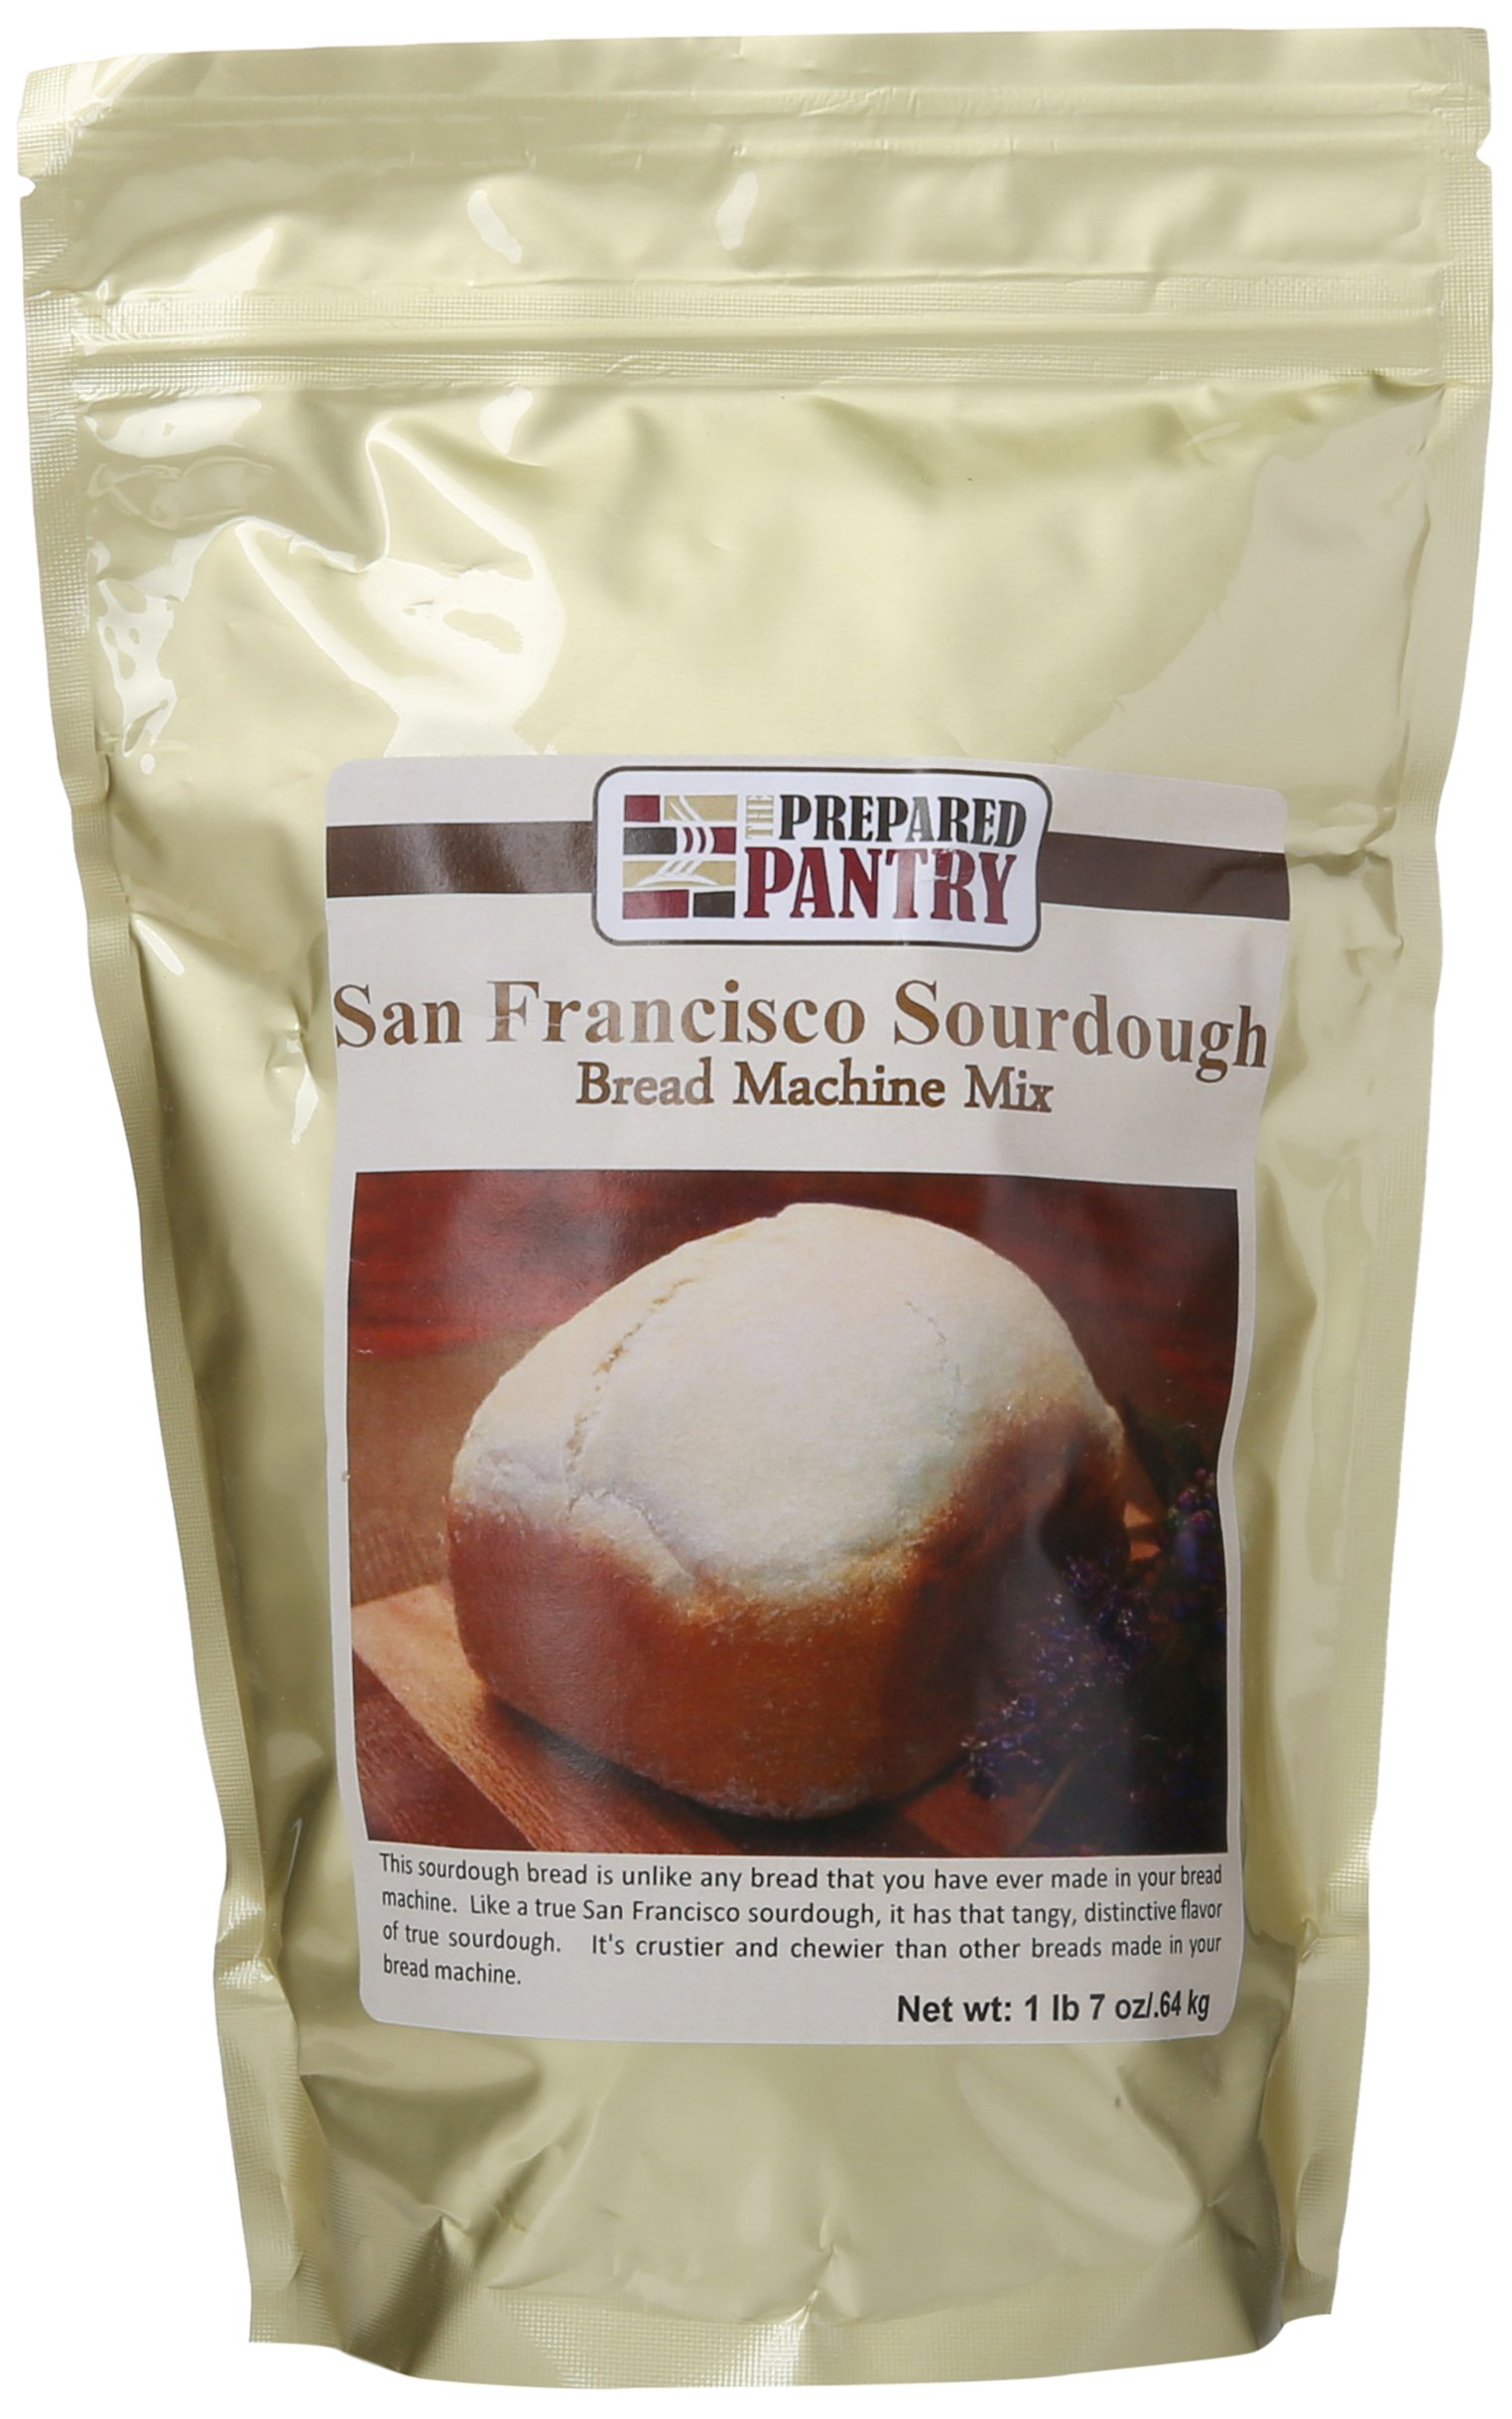 The Prepared Pantry San Francisco Sourdough Bread Machine Mix, 92 Ounce